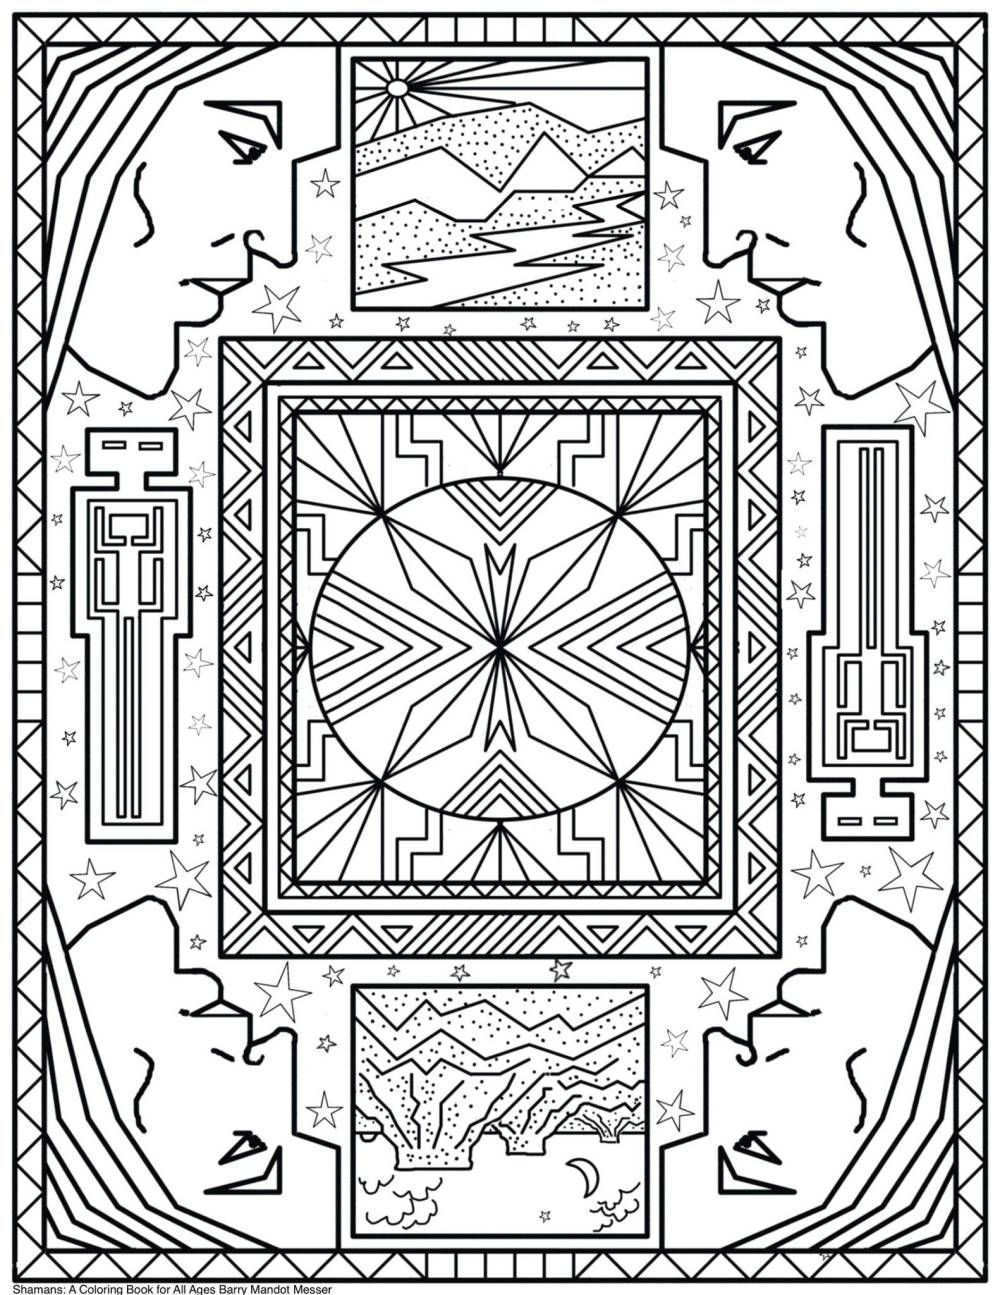 Shamans coloring book by barry mandot messer free coloring page for